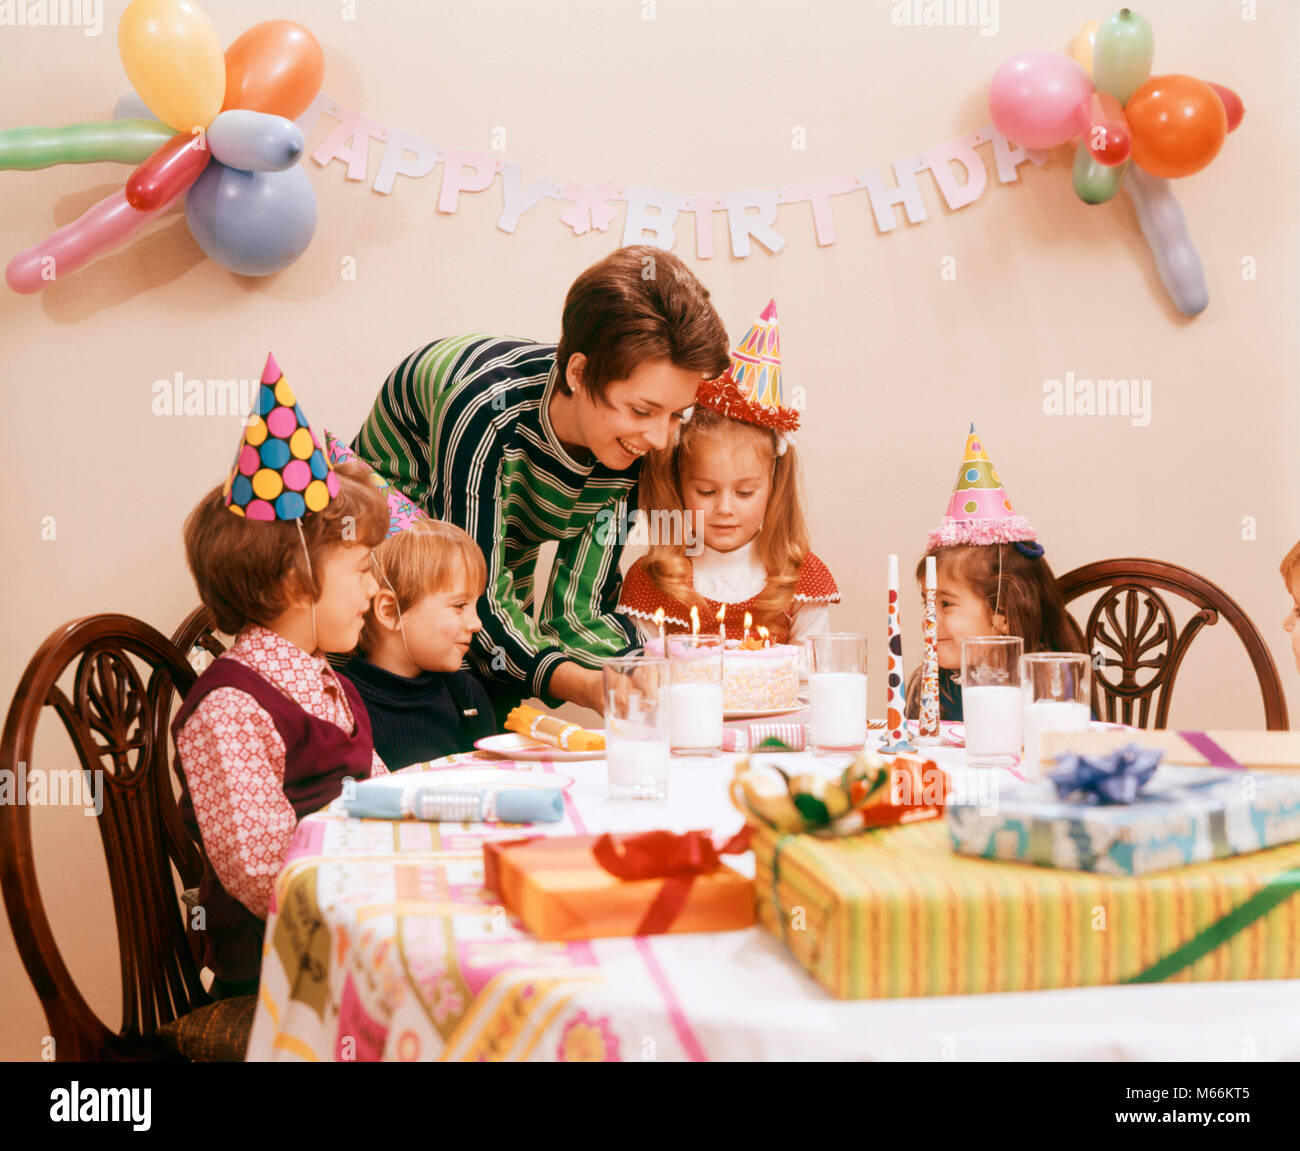 1970s MOTHER SERVING BIRTHDAY CAKE WITH CANDLES PRESENTS GIFTS CELEBRATION FOR FOUR CHILDREN - kf10605 HAR001 HARS - Stock Image